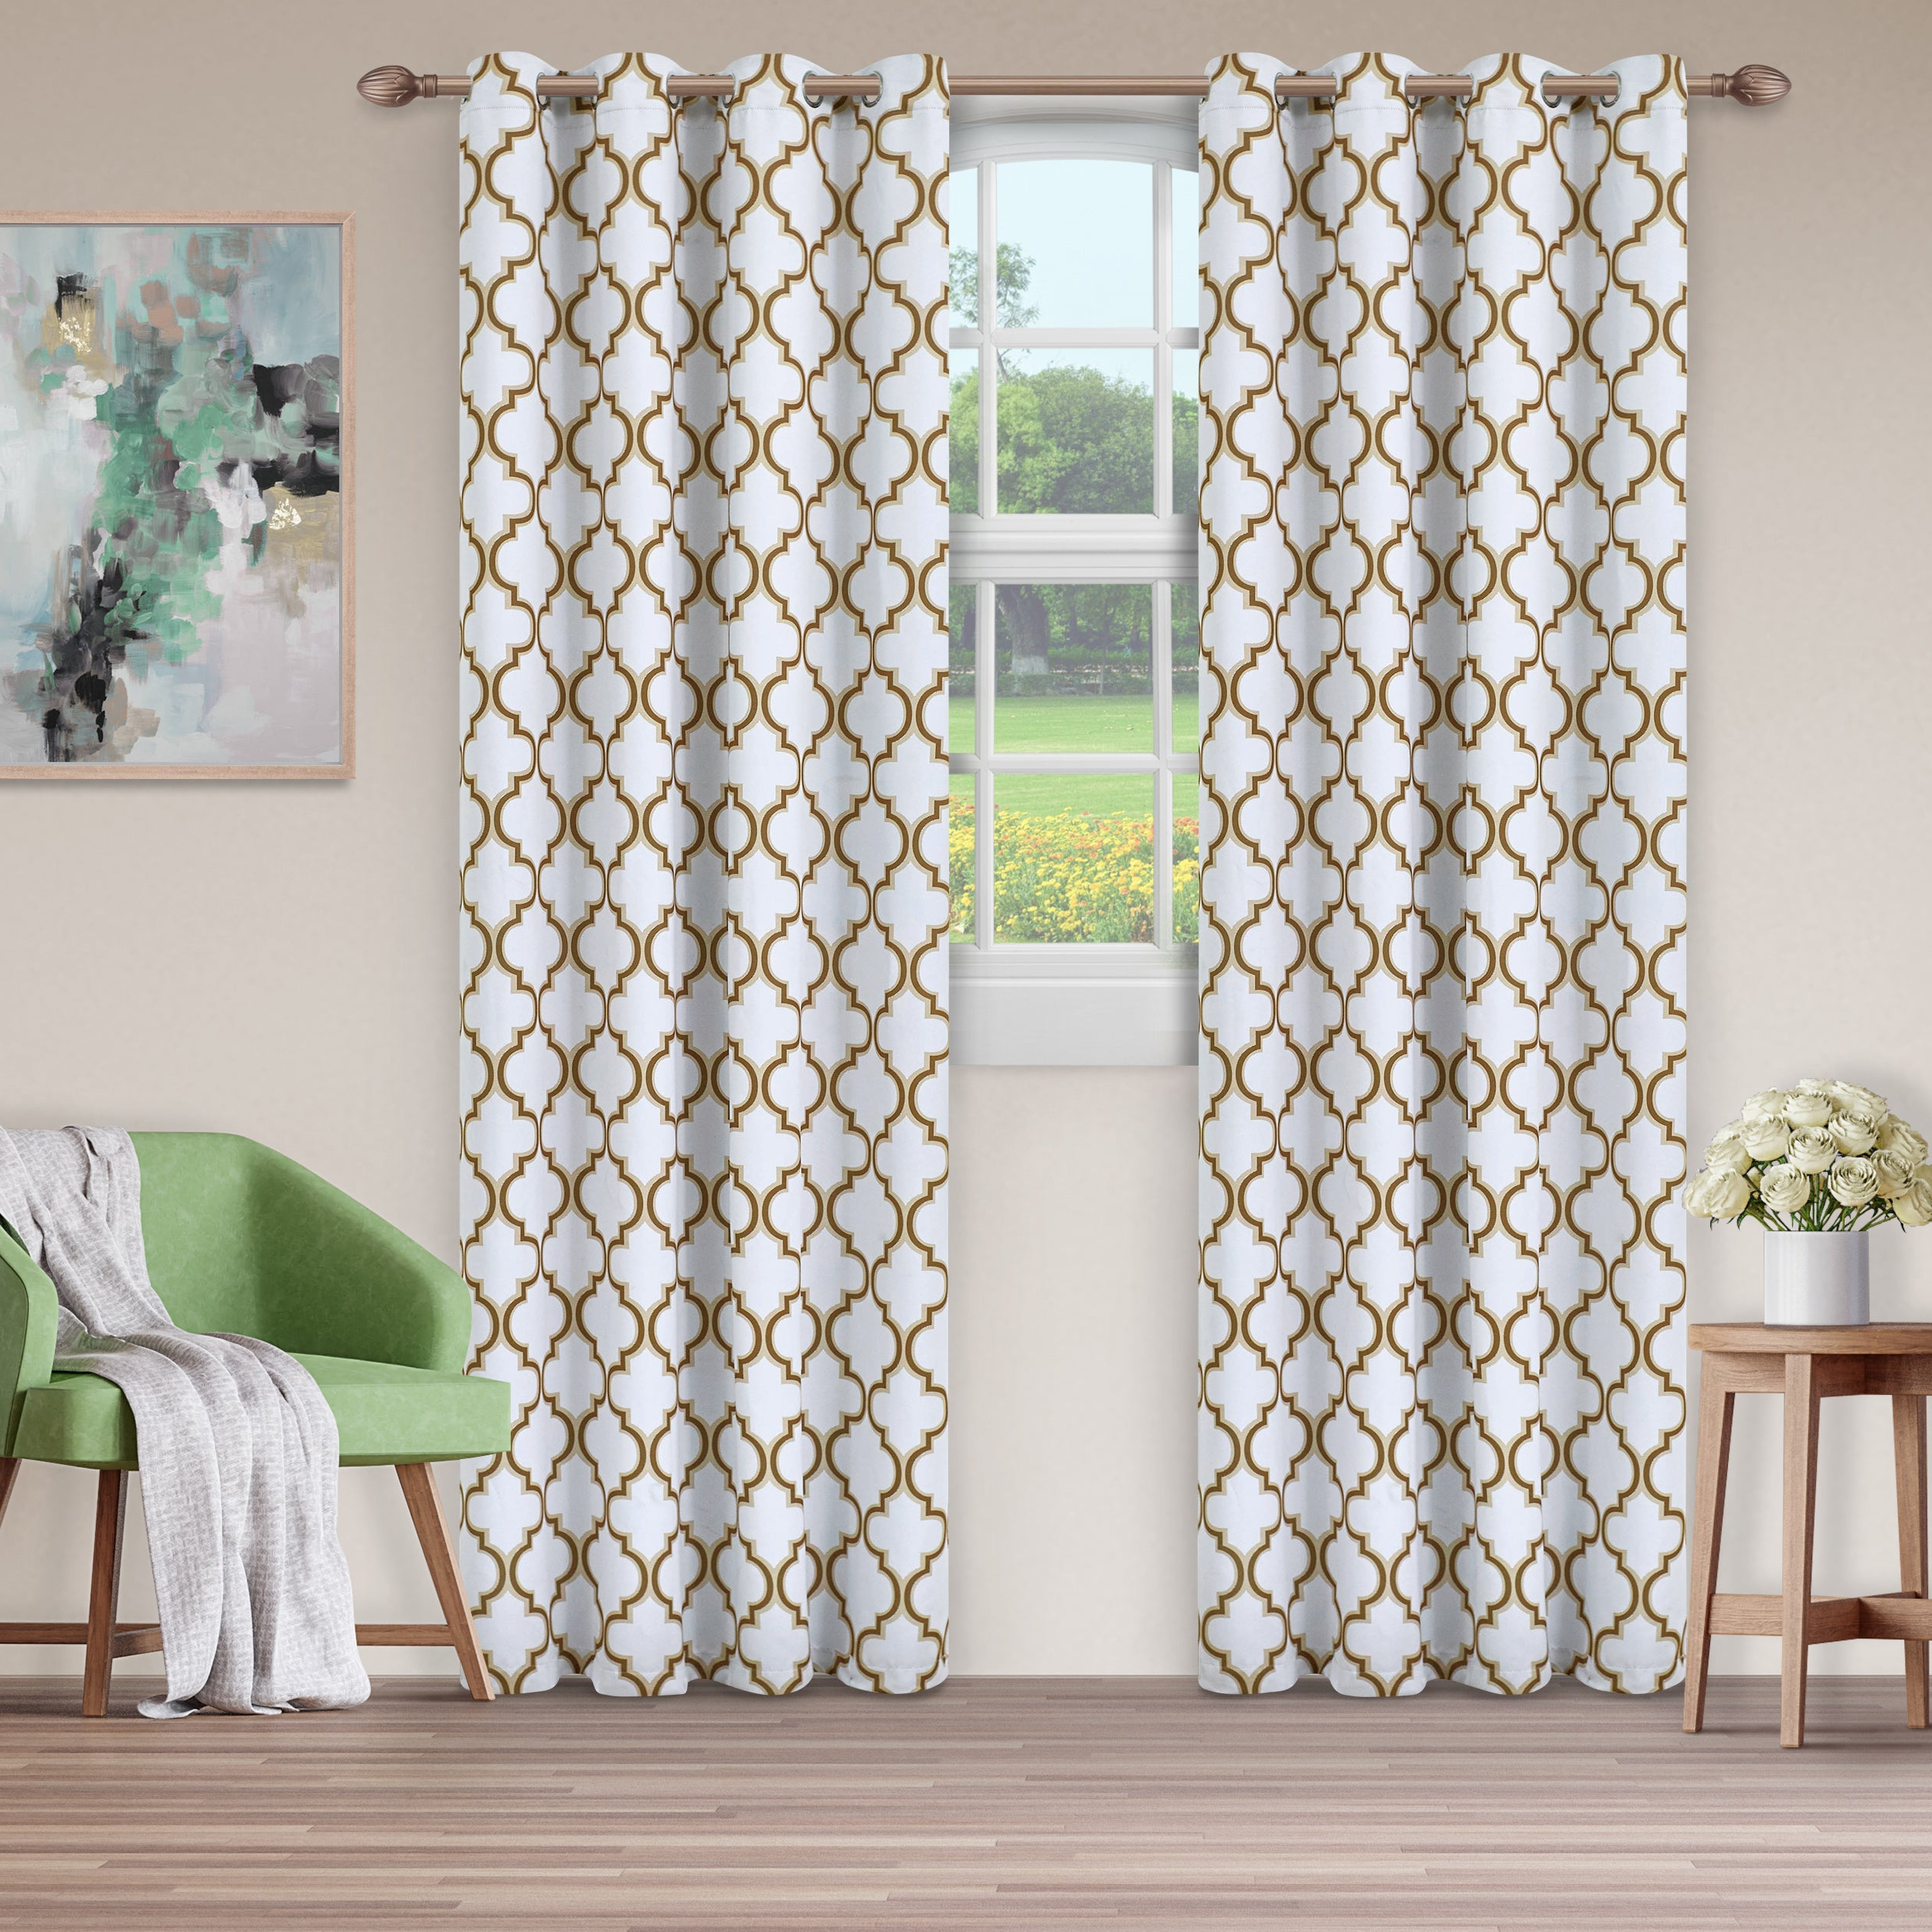 Most Recent Details About Superior Bohemian Trellis Blackout Grommet Curtain Panel With Regard To Superior Solid Insulated Thermal Blackout Grommet Curtain Panel Pairs (View 14 of 20)